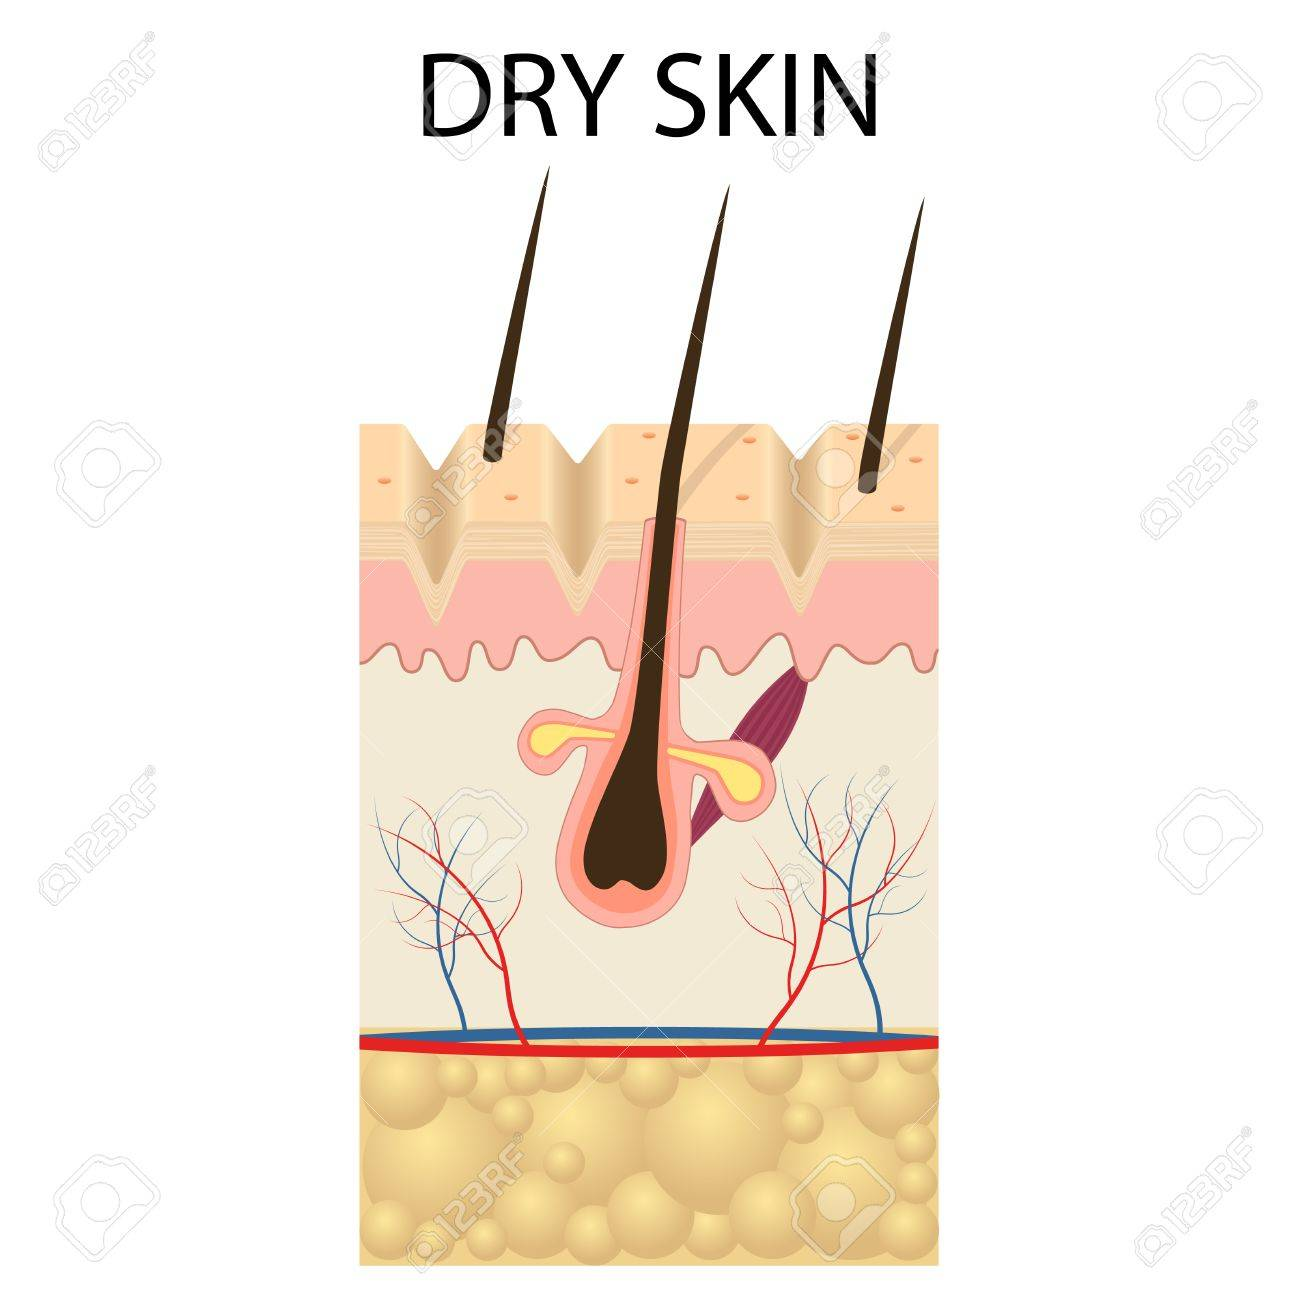 Illustration Of The Layers Of Dry Skin On The White Background